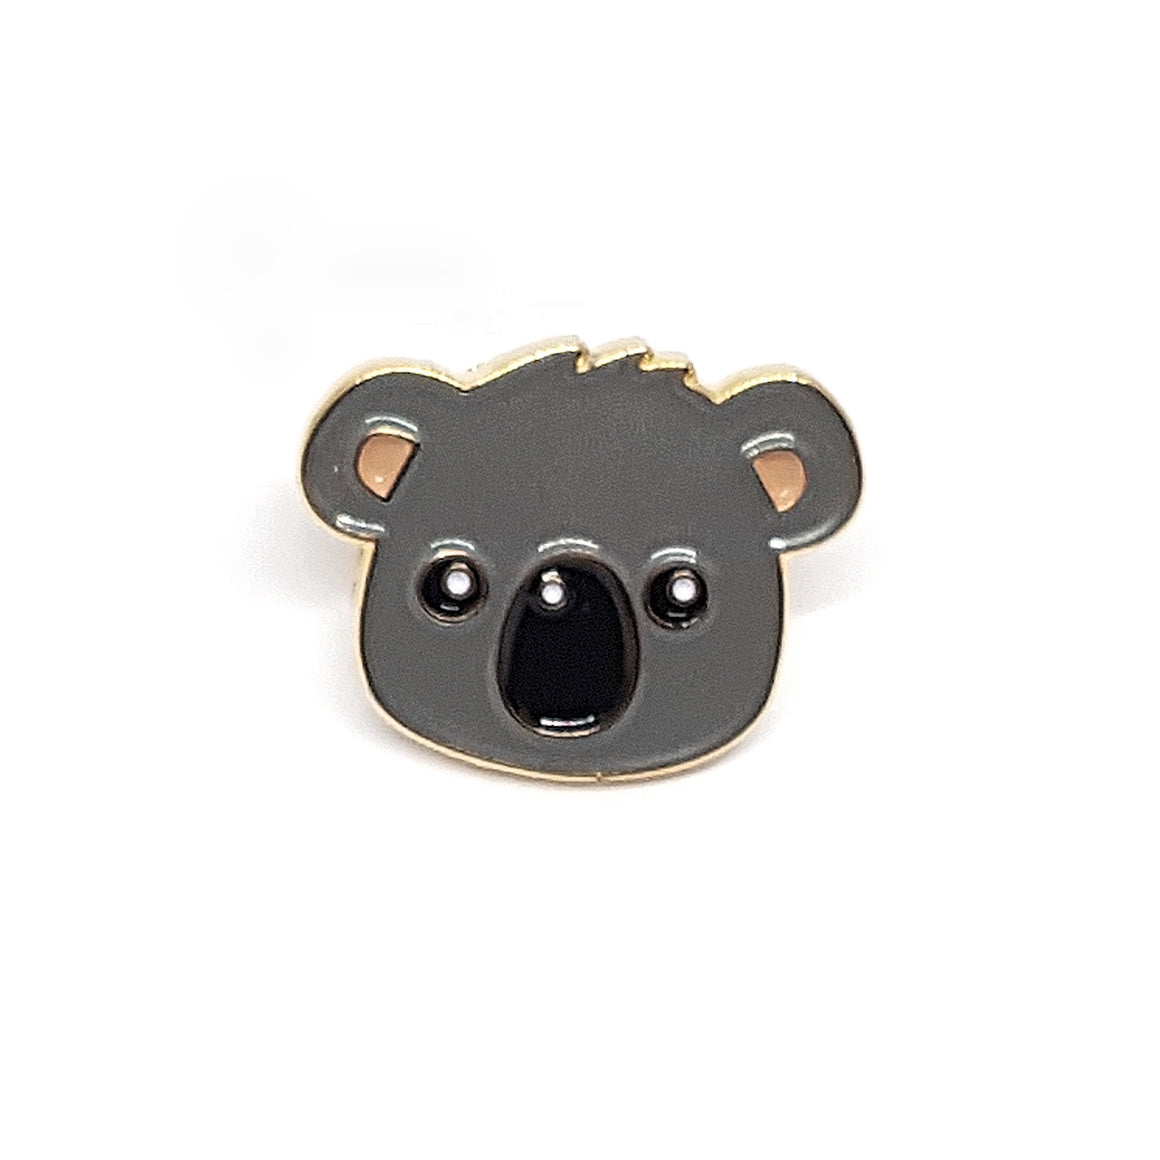 Koala Enamel Pin by Patch Press